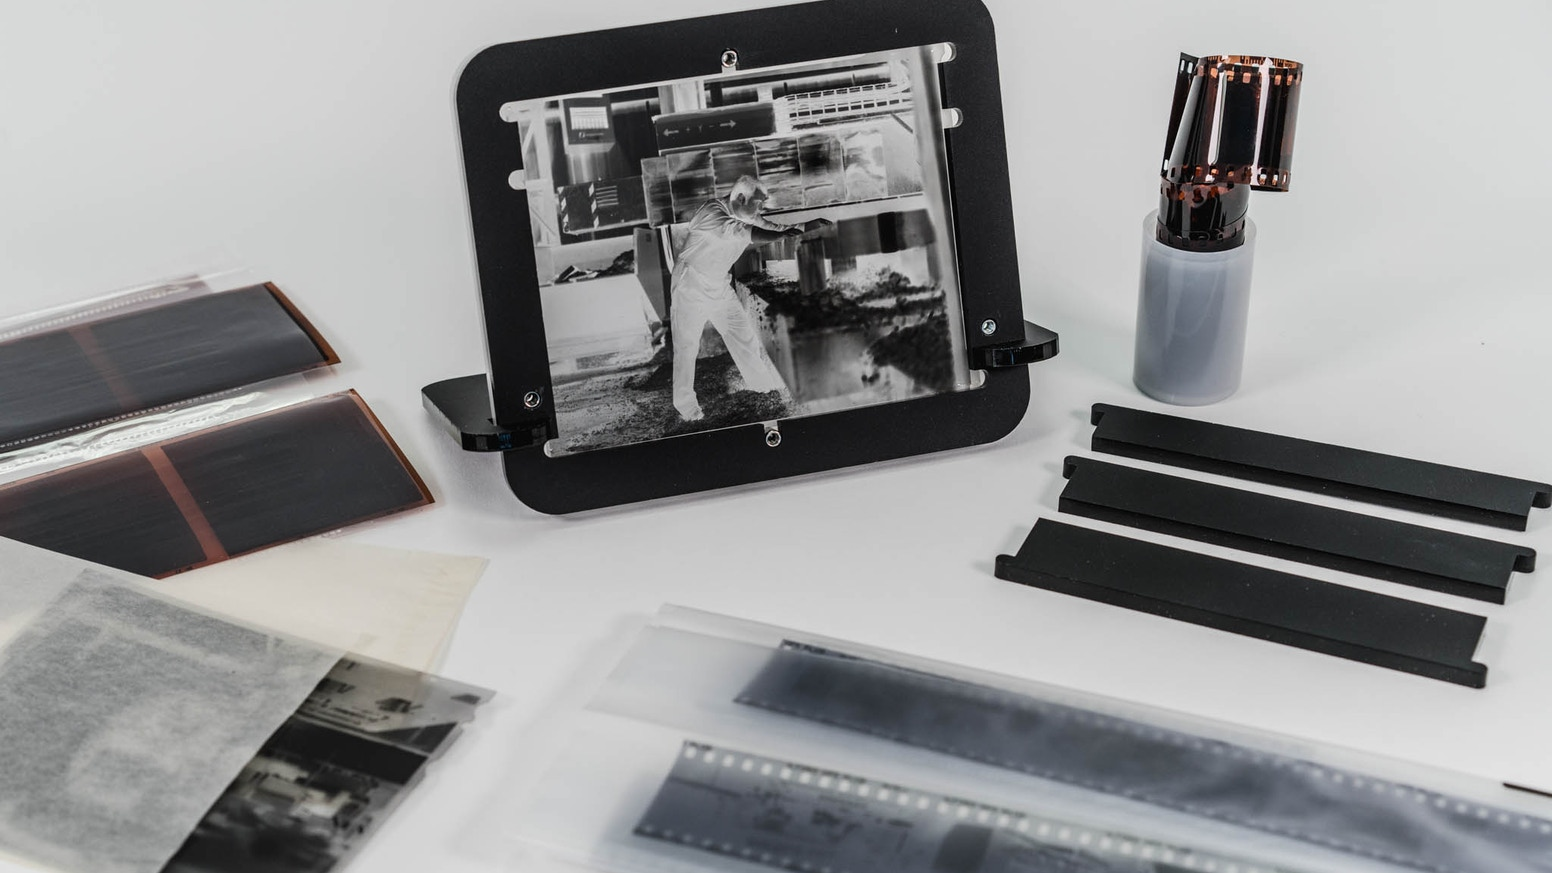 pixl-latr - an innovative, low cost and effective solution for digitising black & white or colour negatives and transparencies